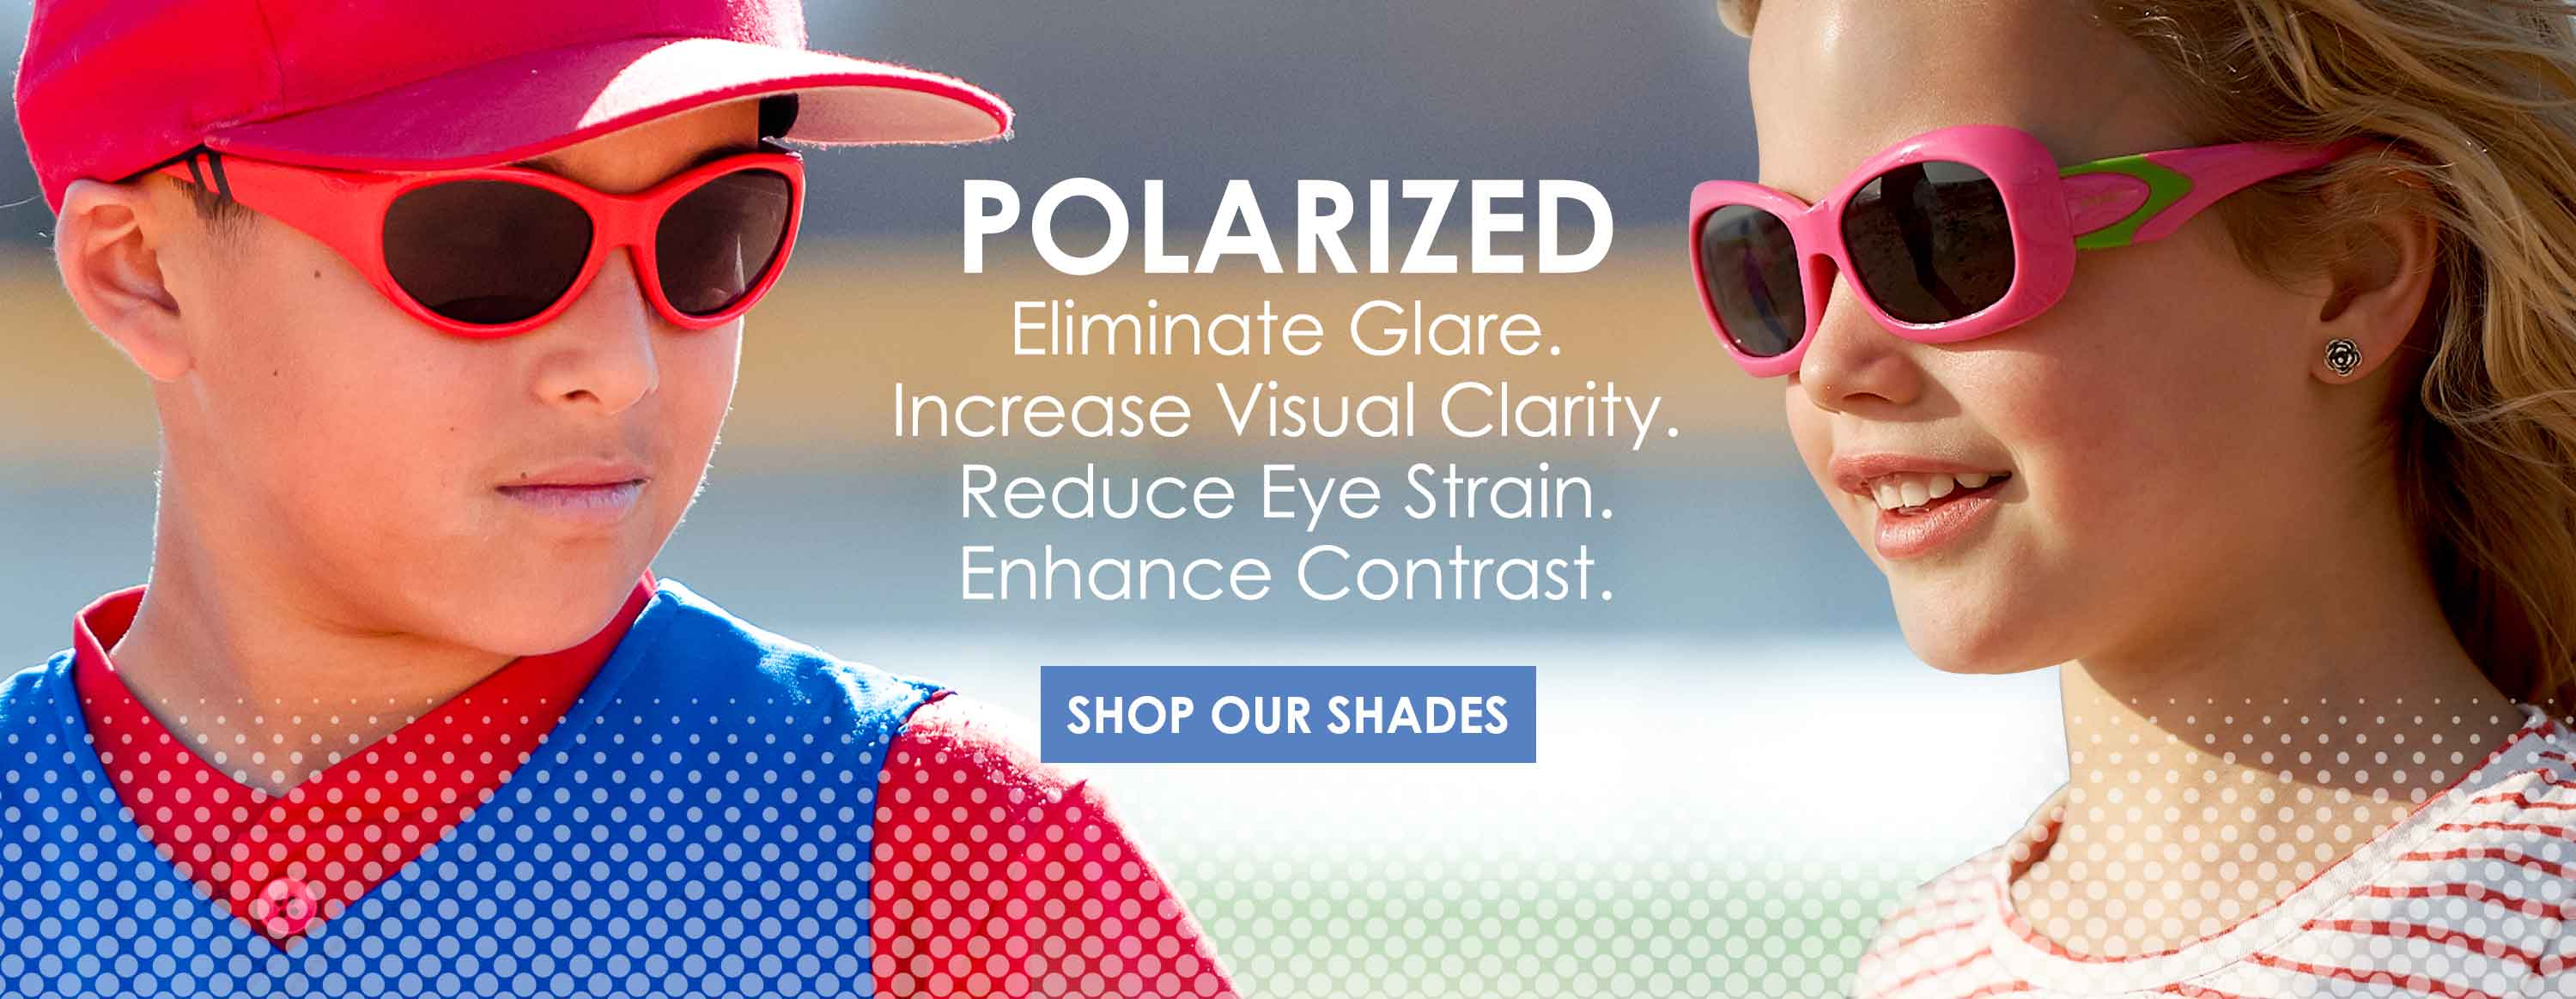 REAL_WEB_BANNER_POLARIZED_W_BANNER